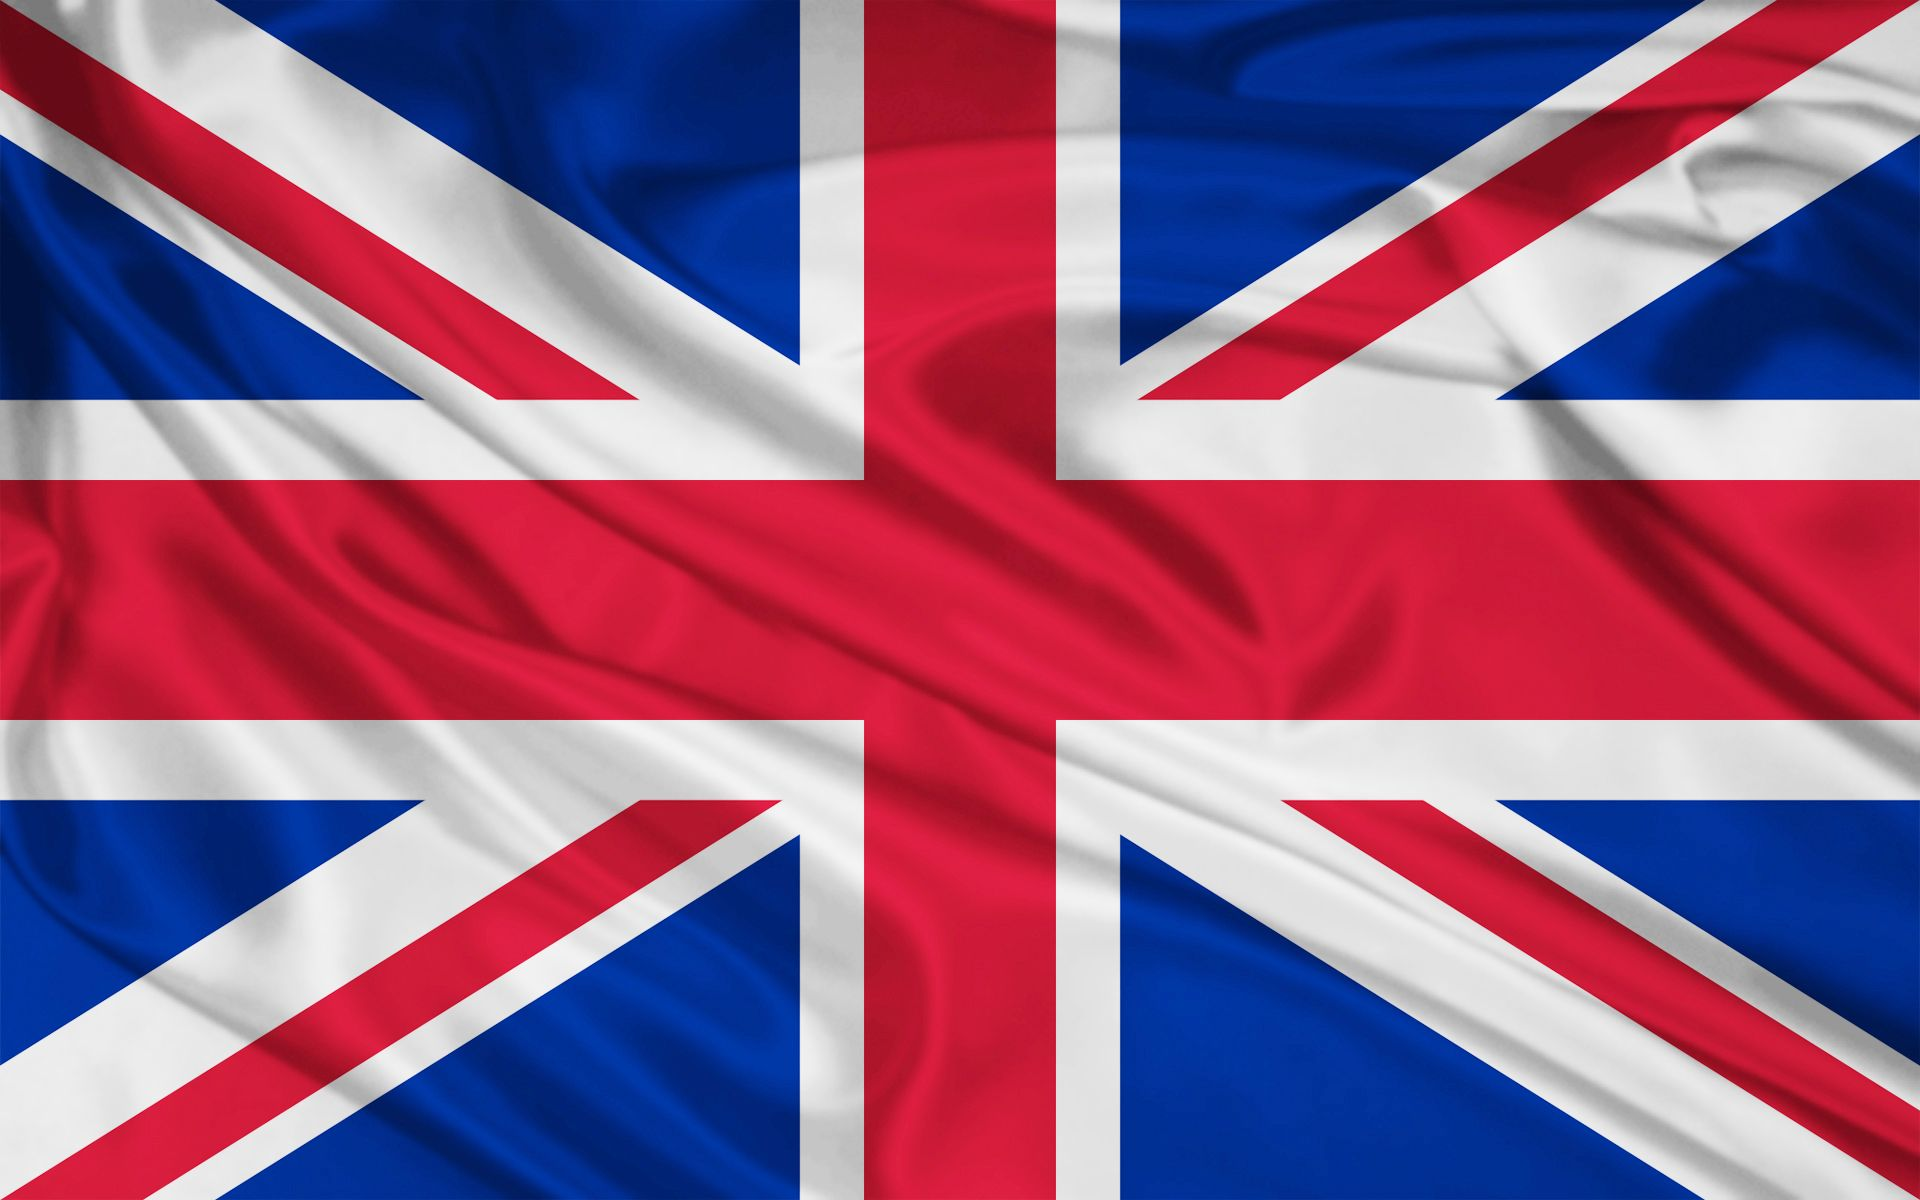 Wallpaper iphone uk - United Kingdom Flag Wallpapers Wallpaper Cave